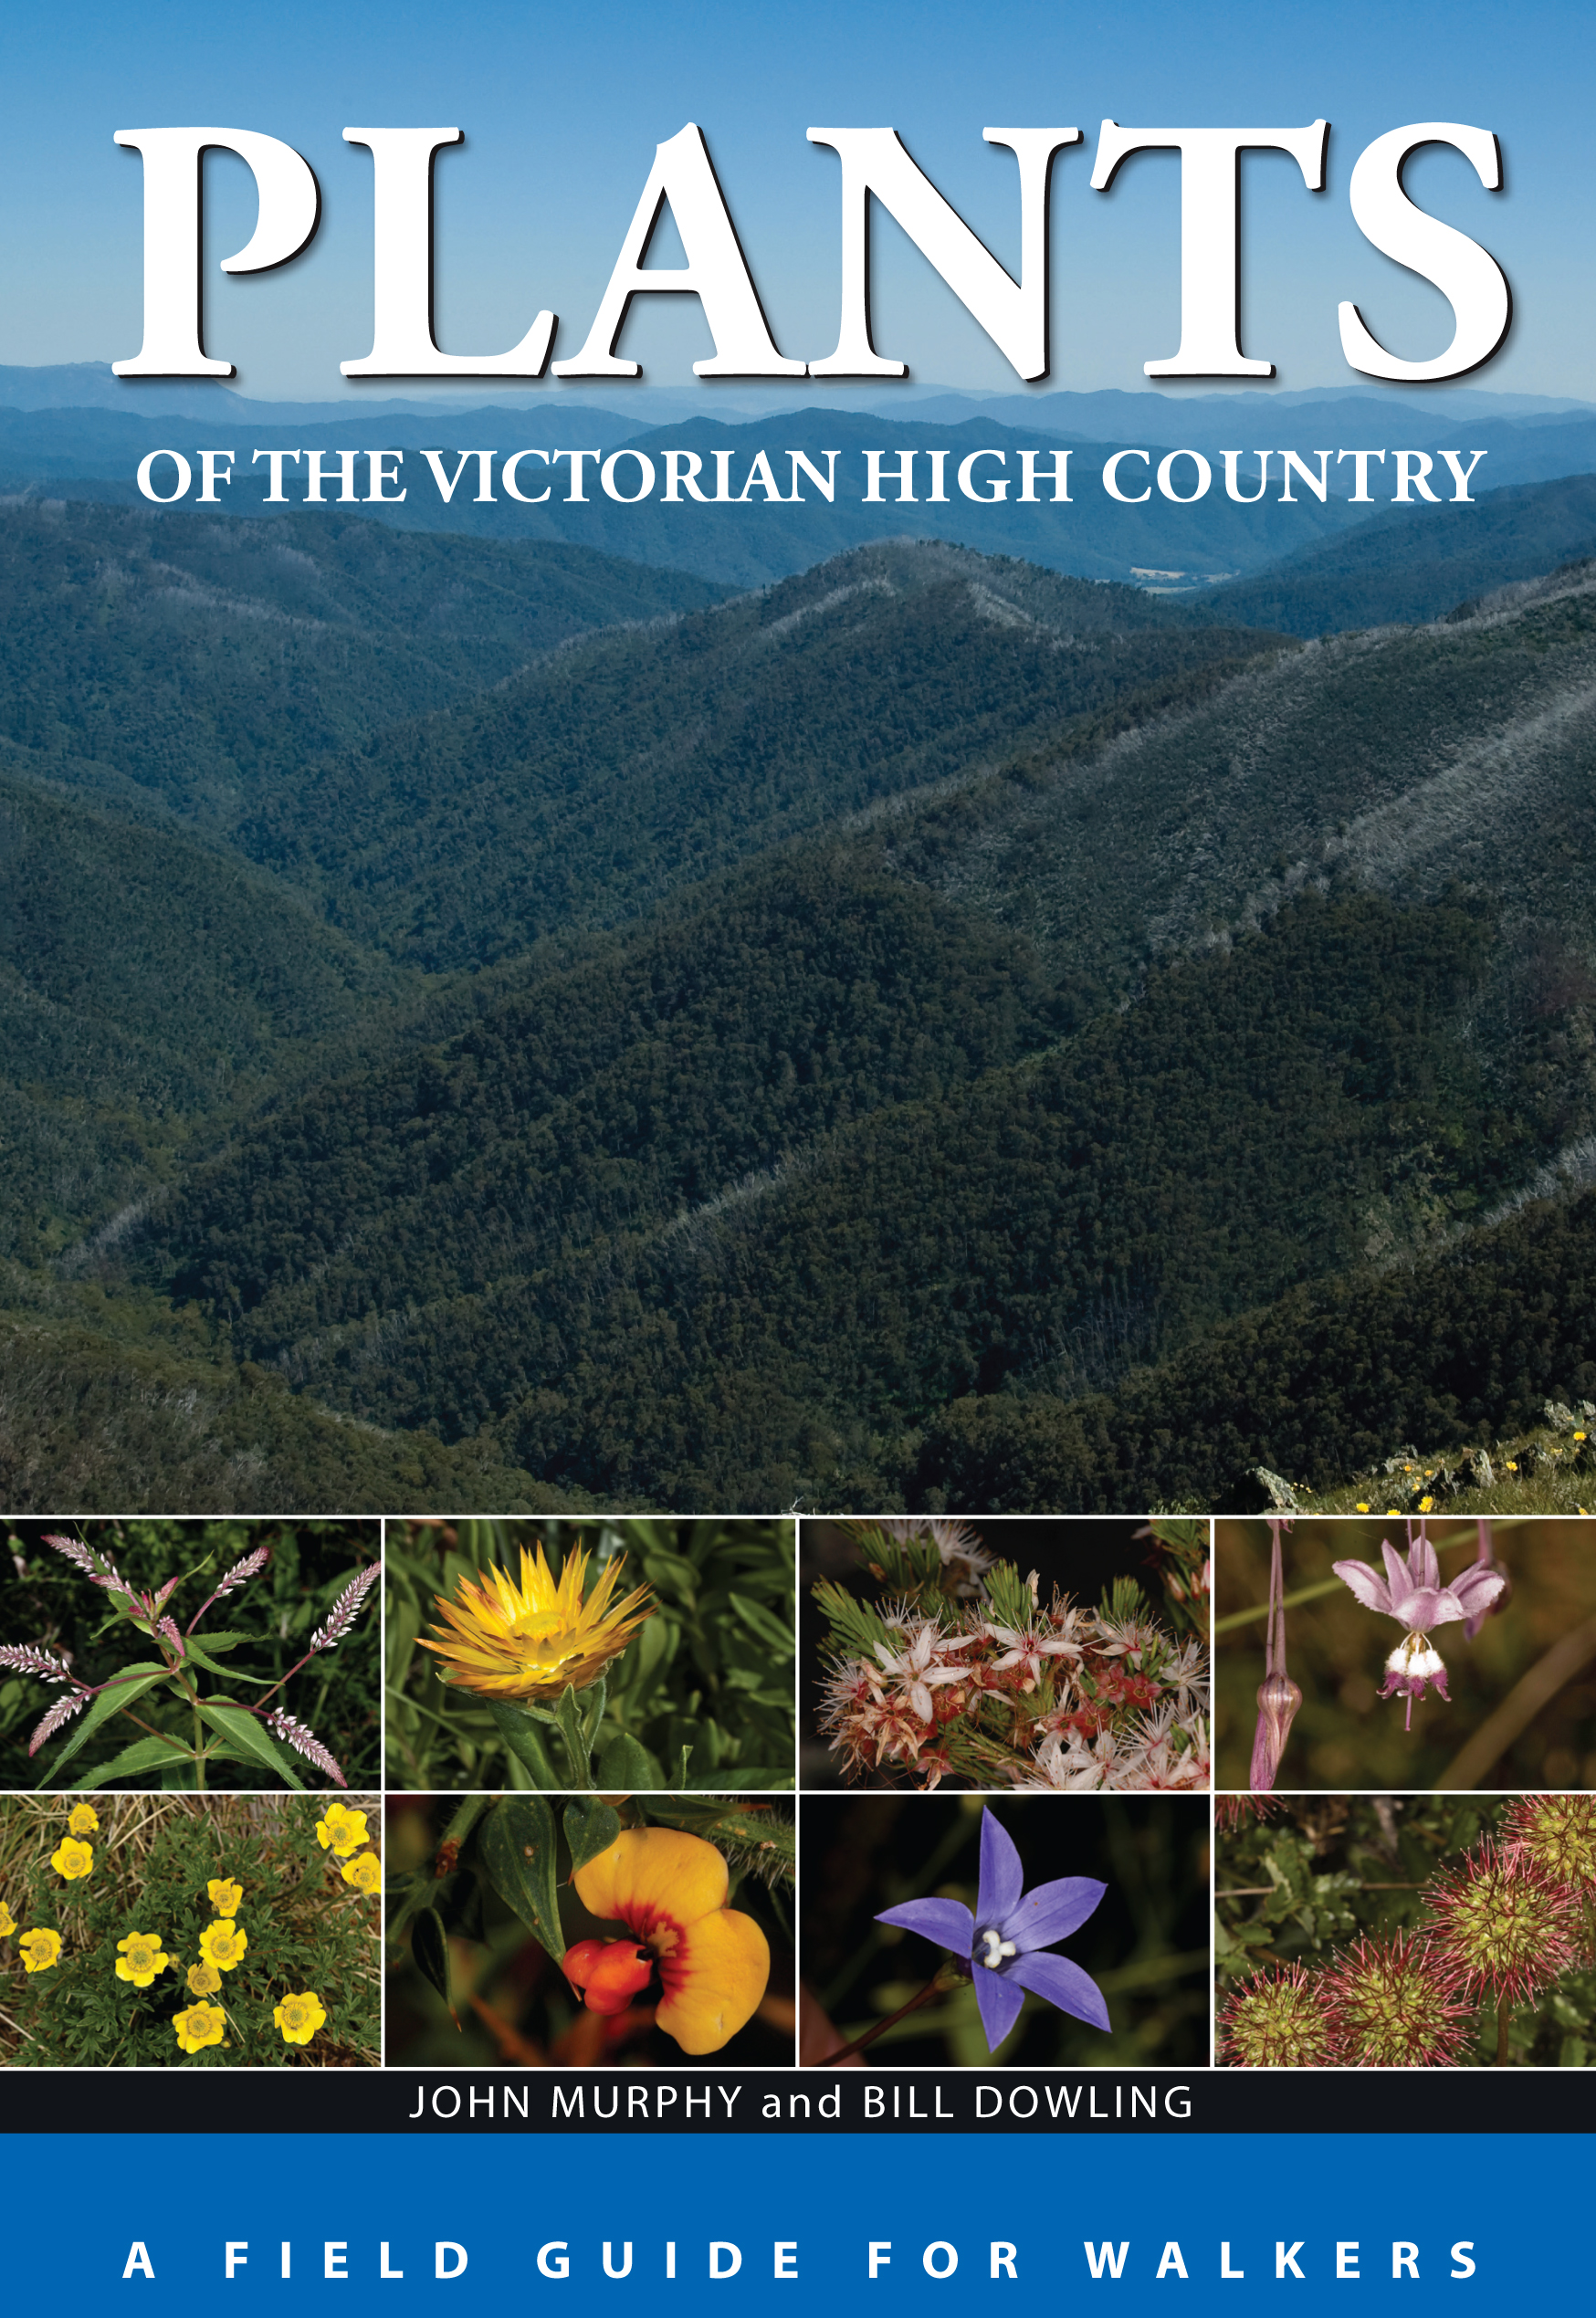 The cover image of Plants of the Victorian High Country, features a green